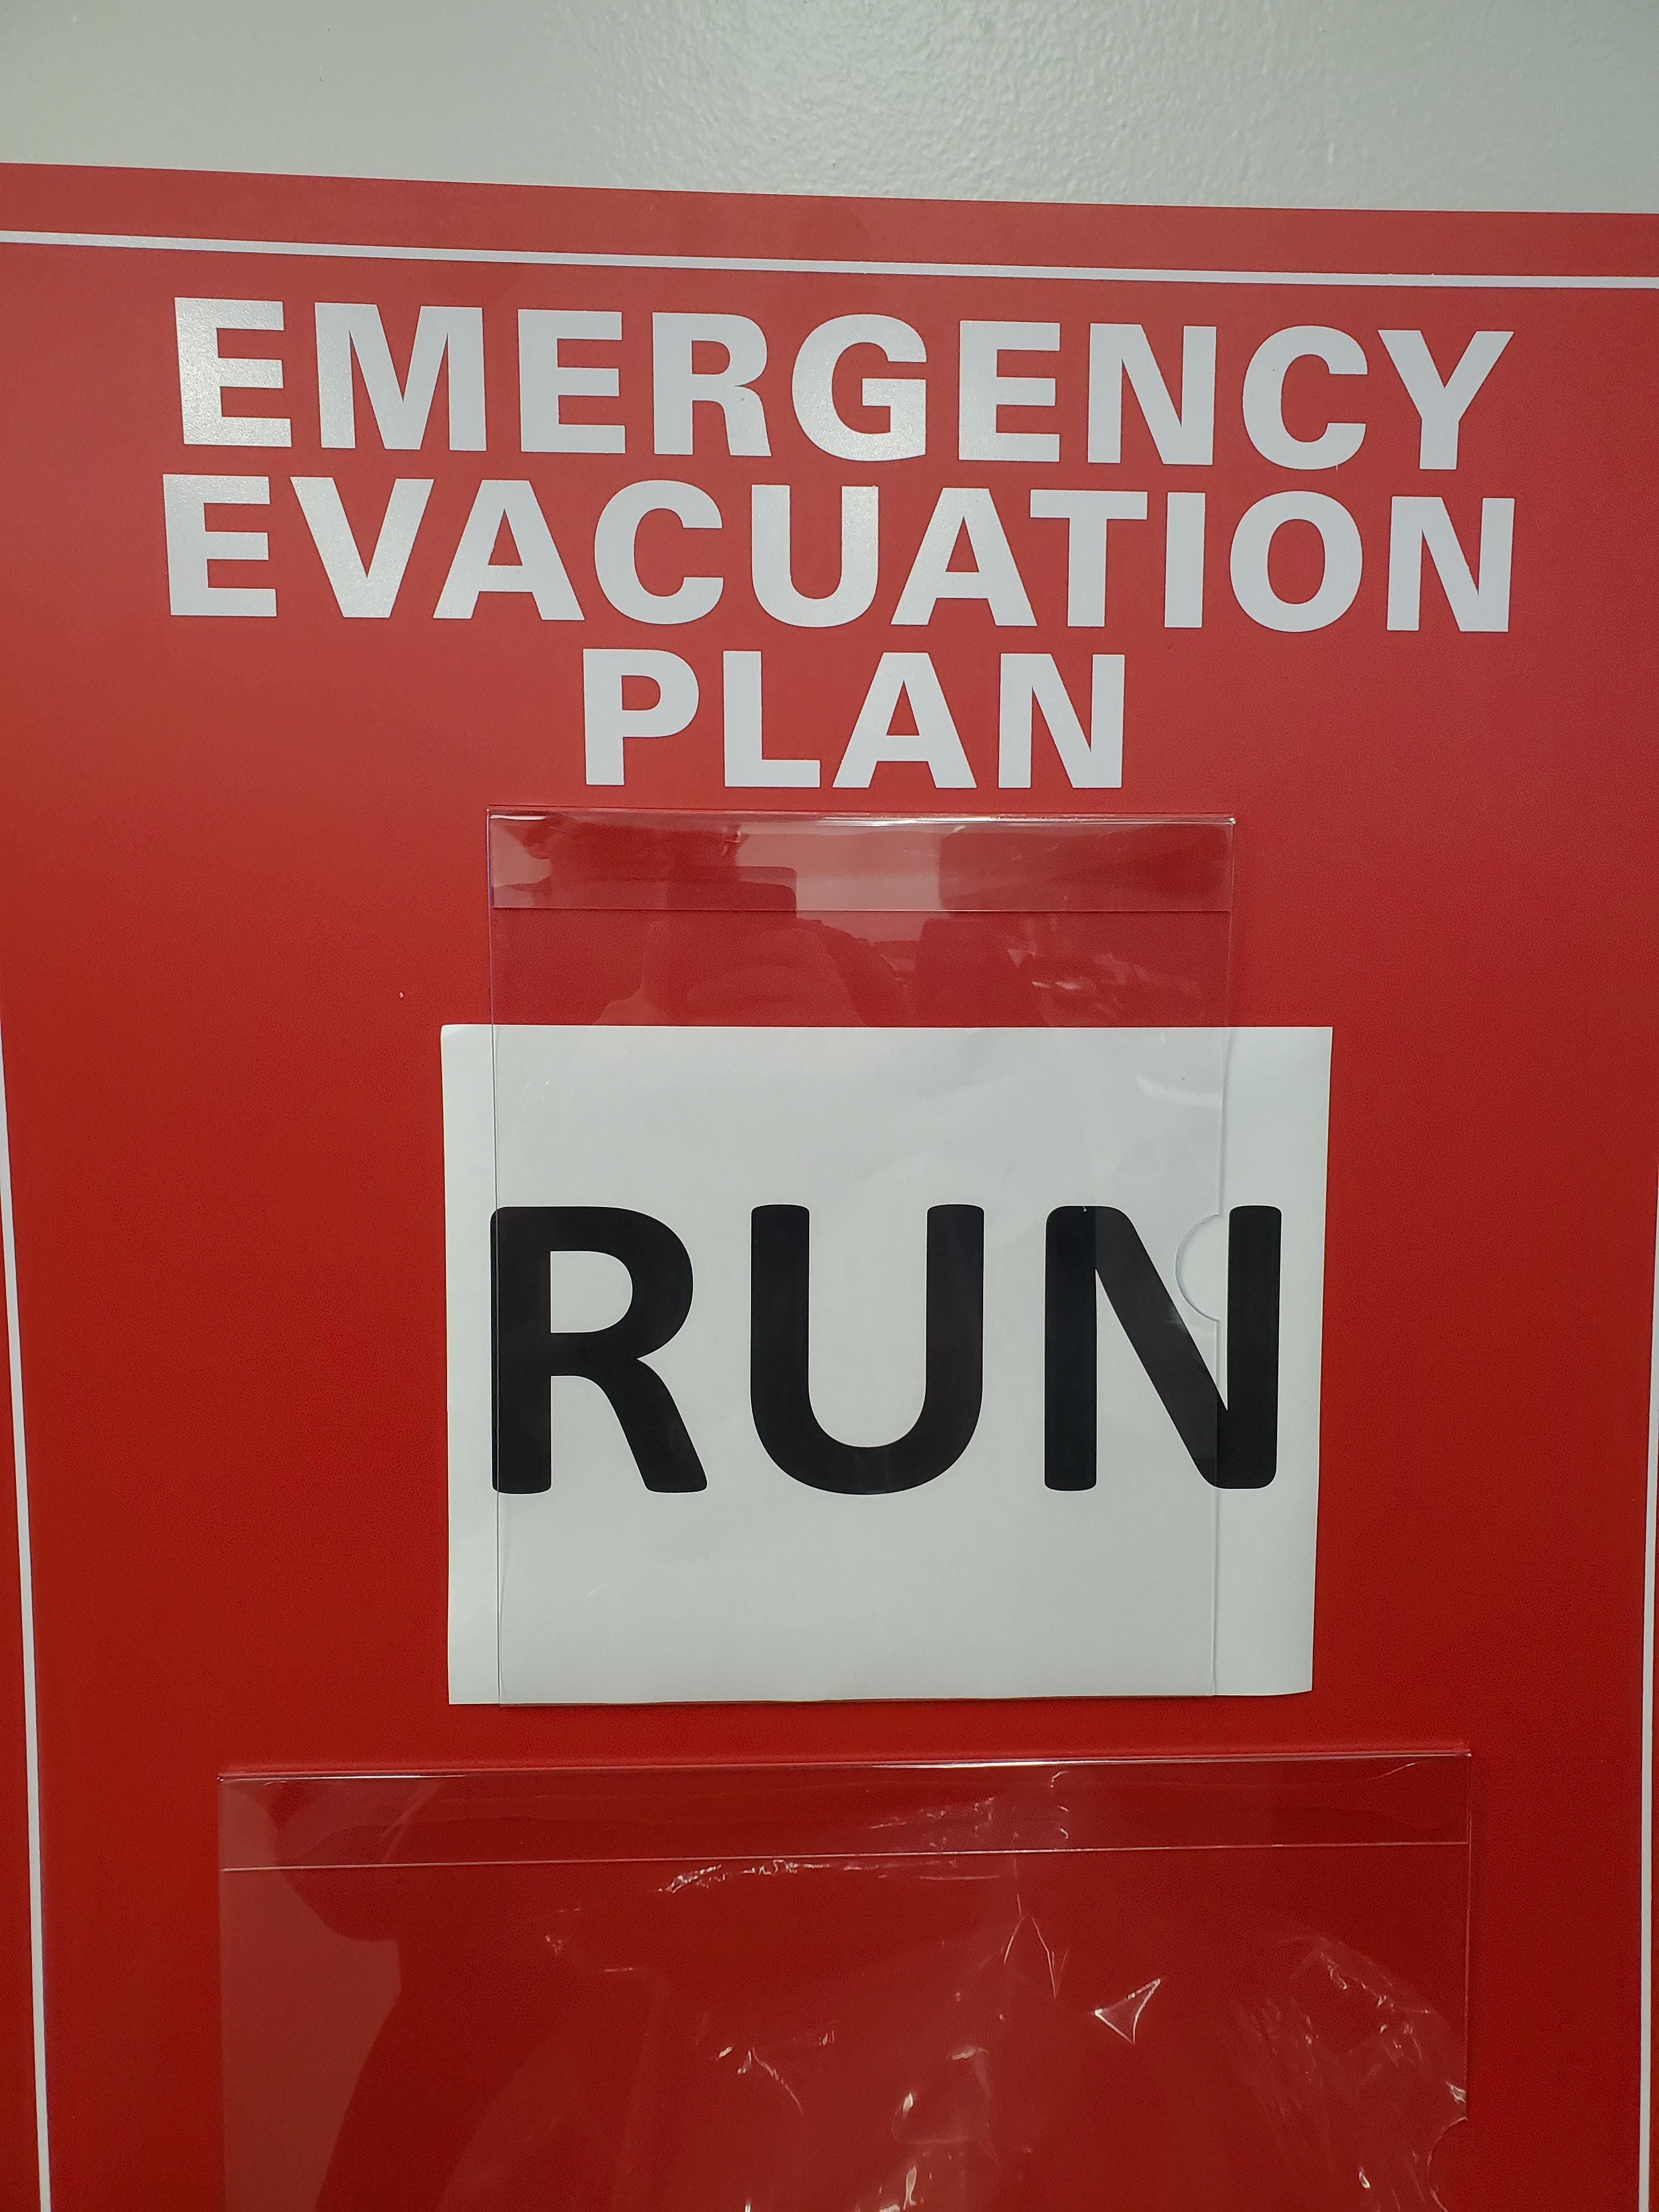 Our office evacuation plan